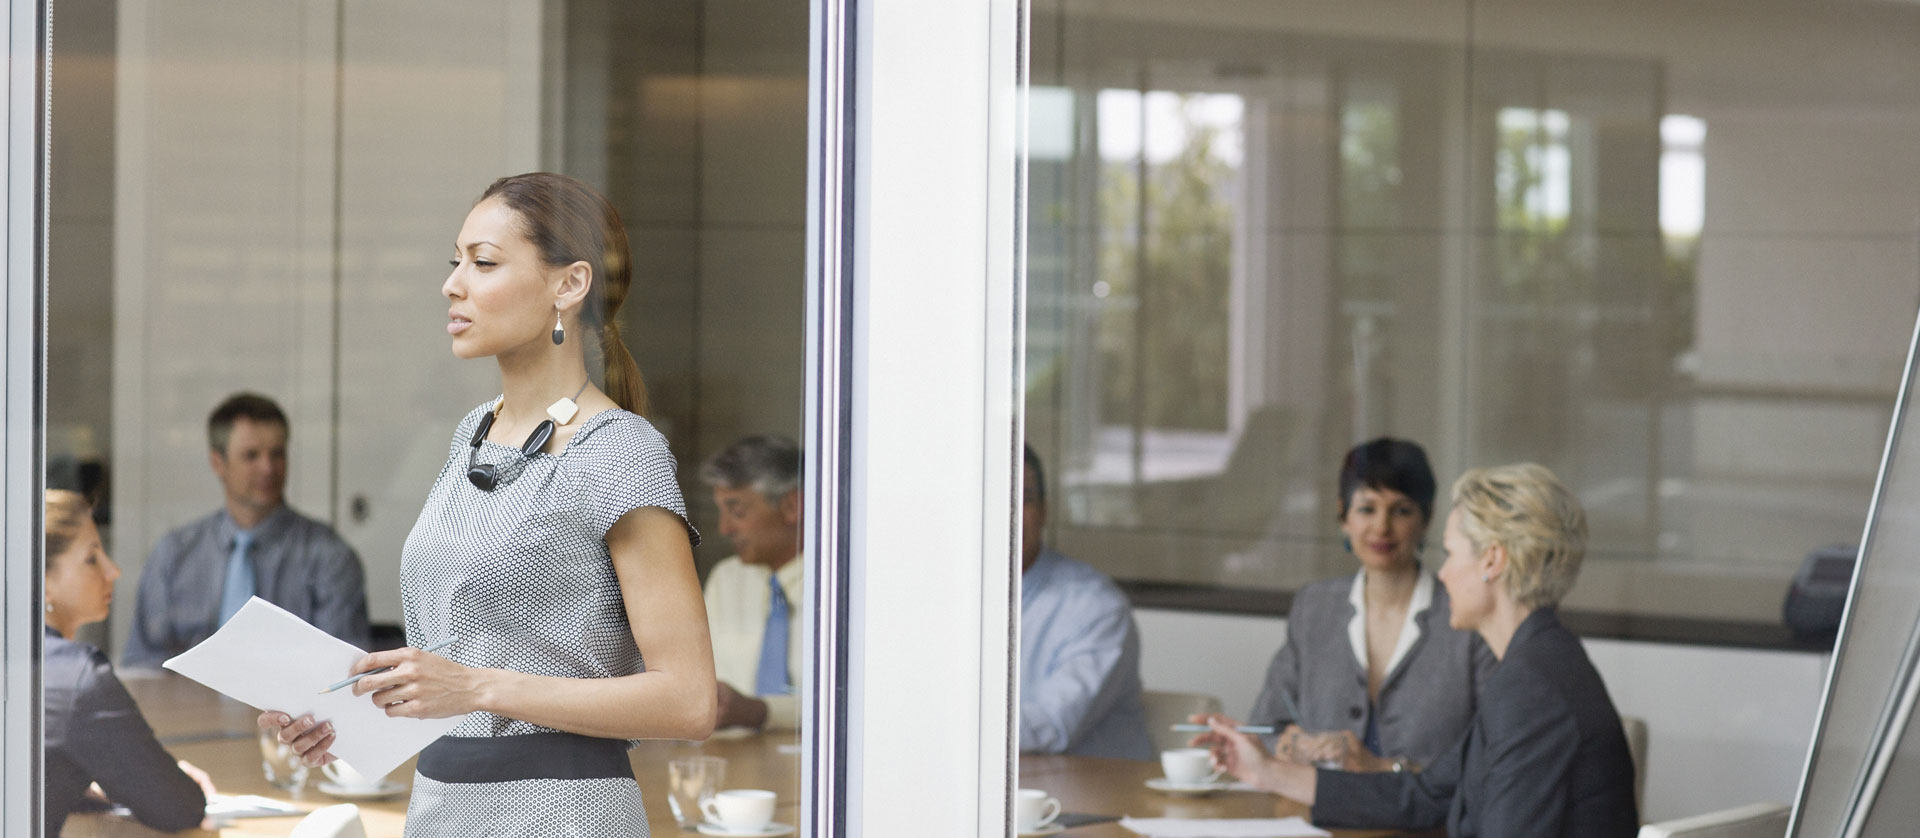 businesswoman in front of conference room window with people seated at a table in the background